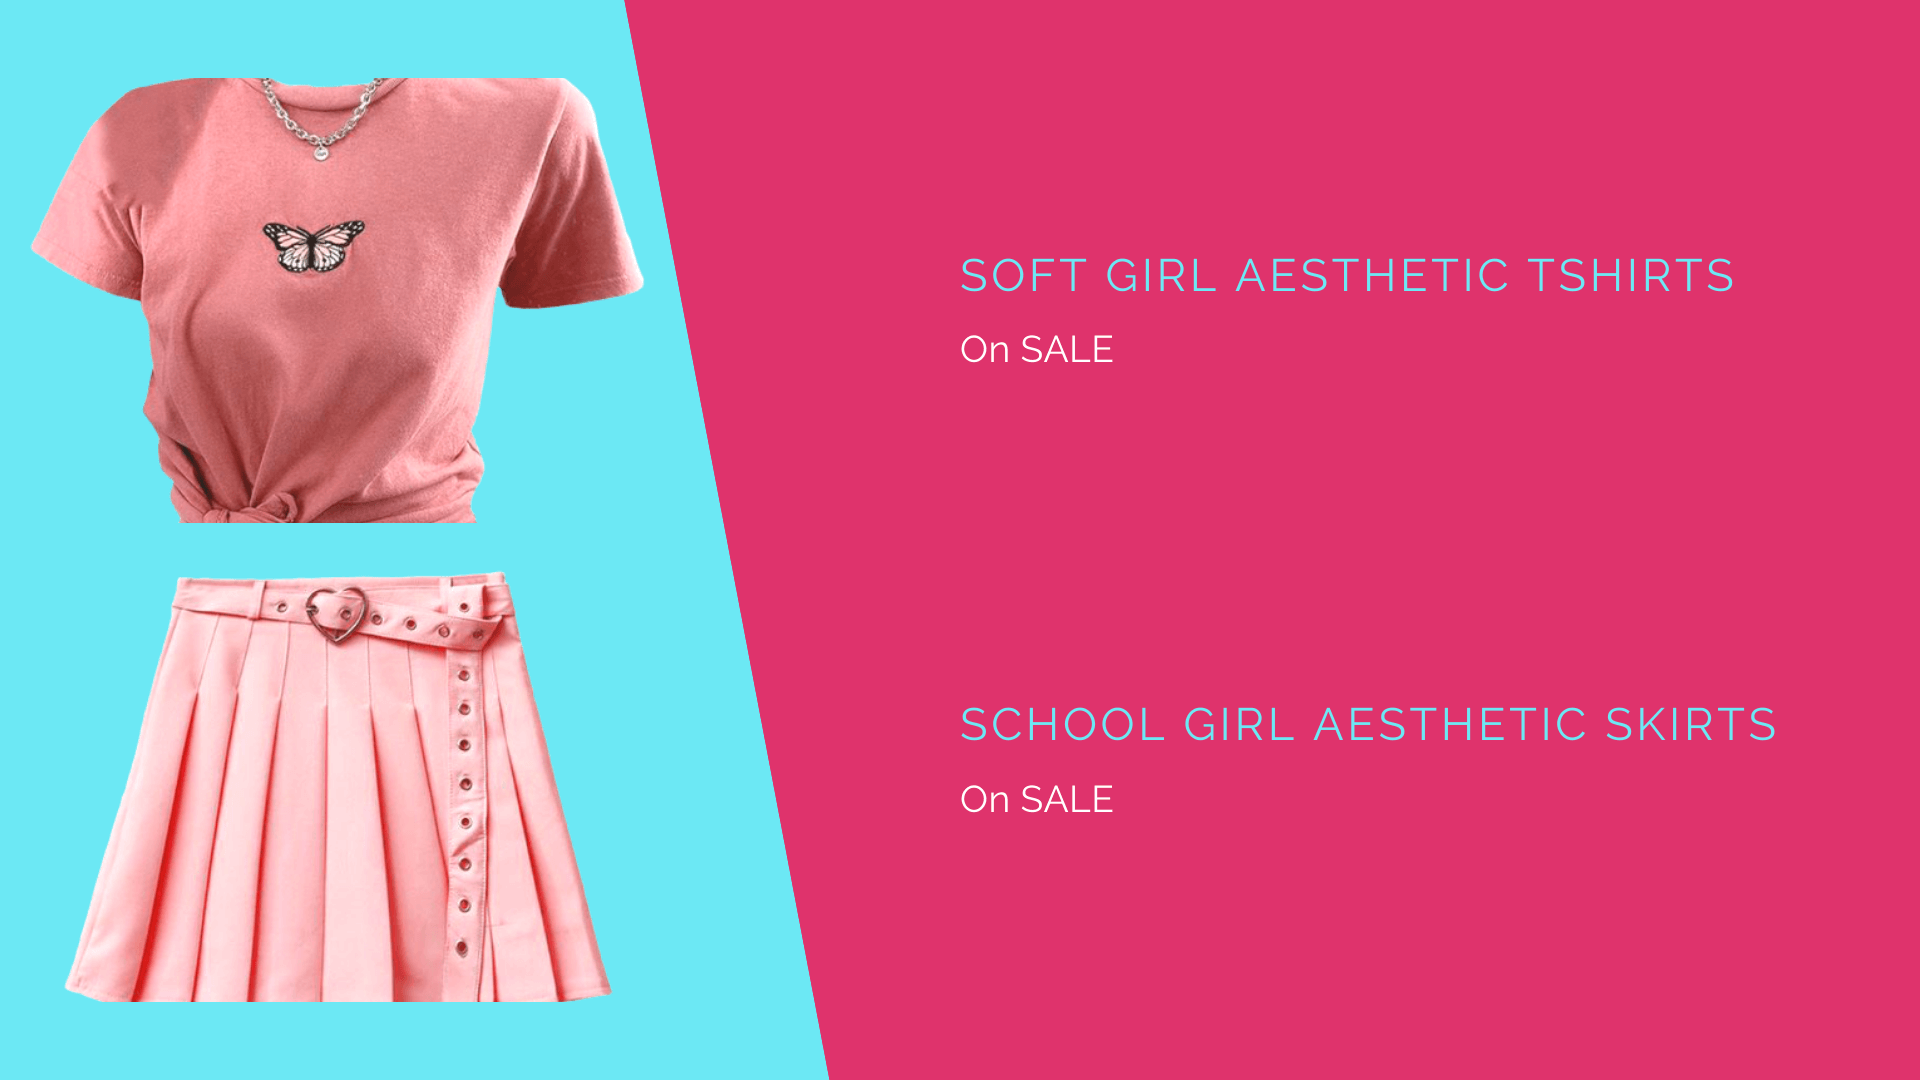 Soft girl aesthetic tshirts and school girl aesthetic skirts - cosmique studio